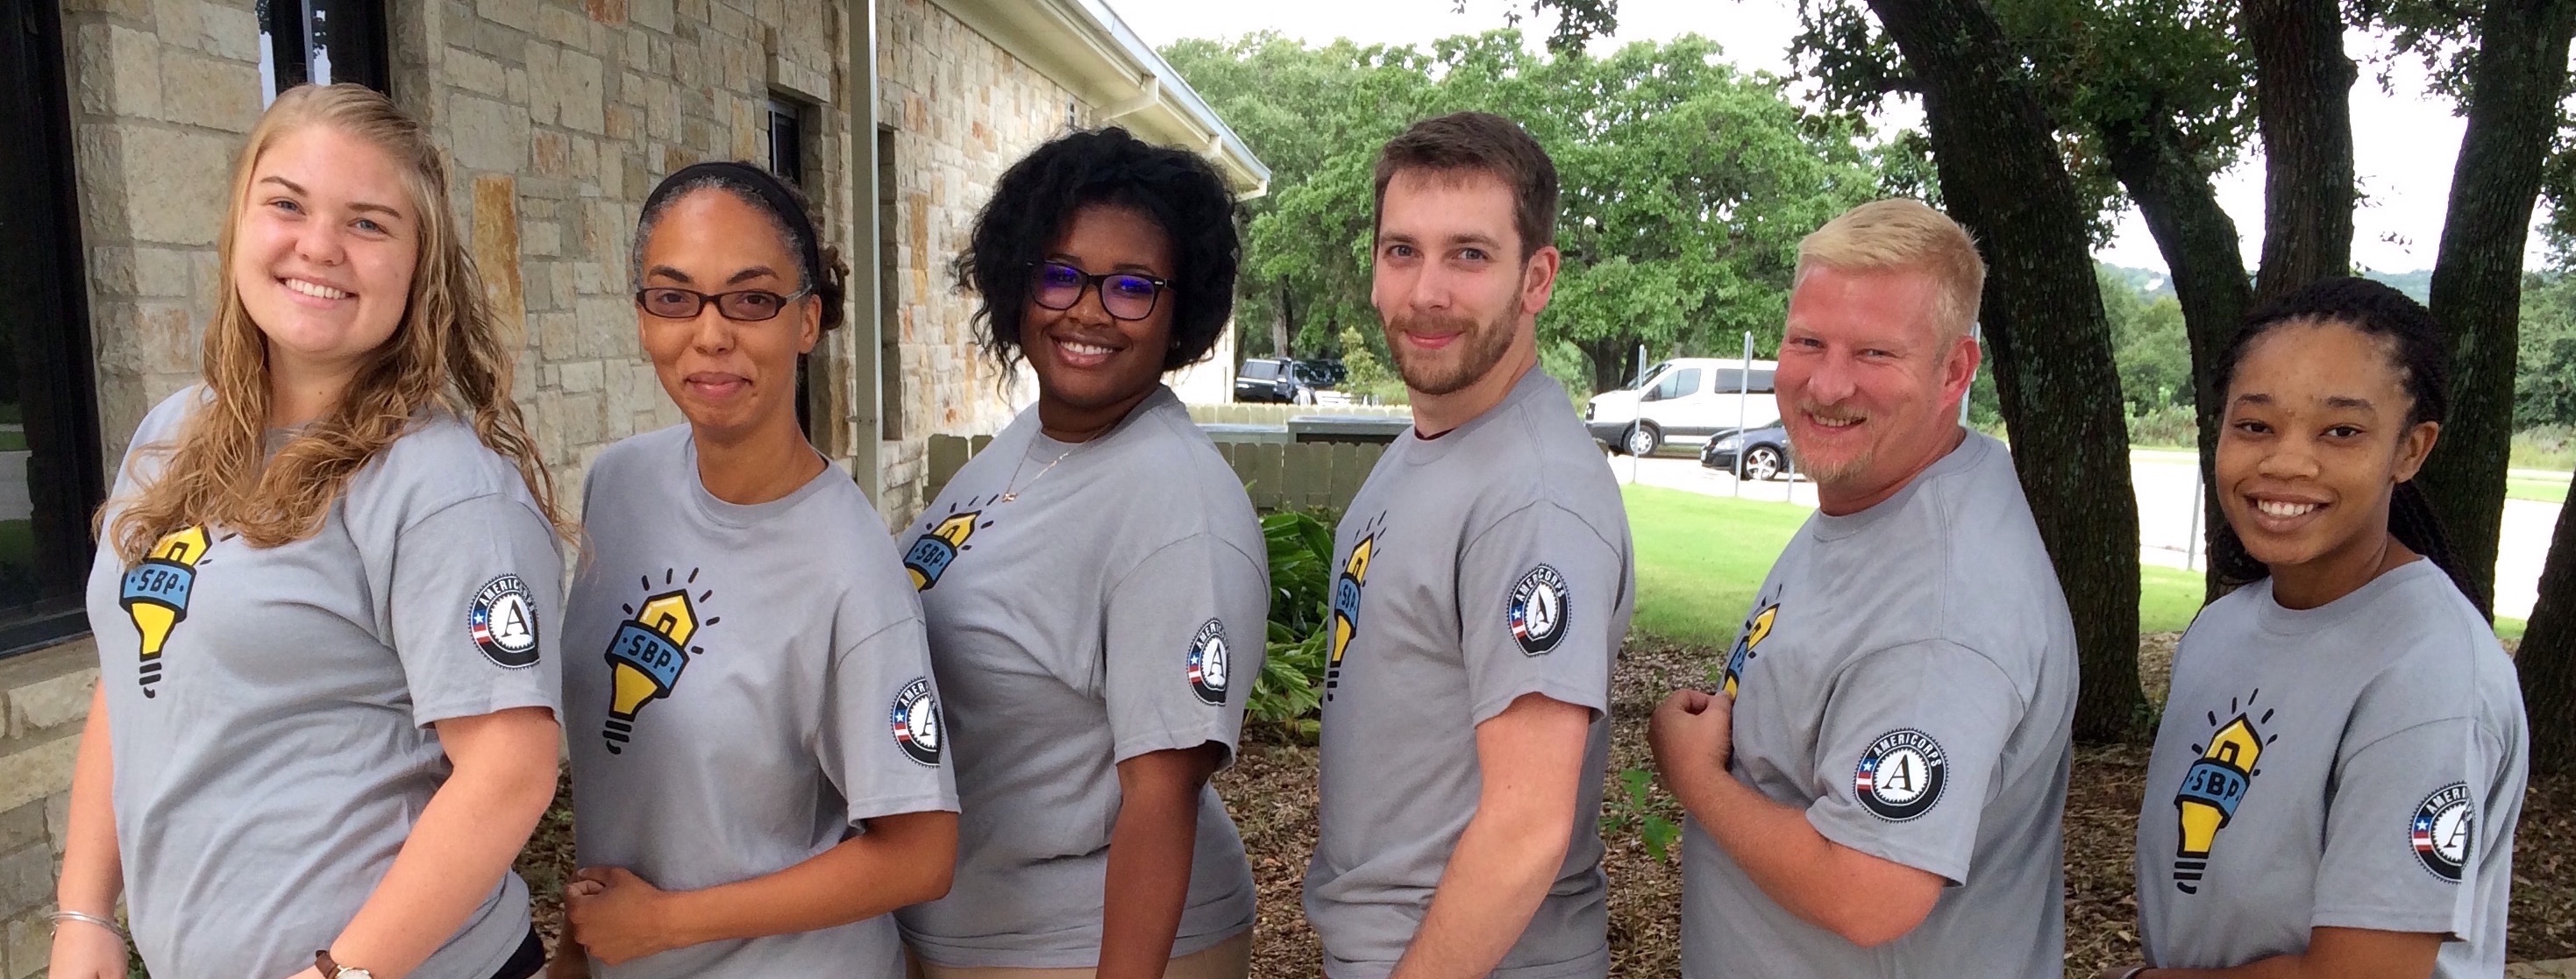 Join Americorps | Get Involved | SBP USA